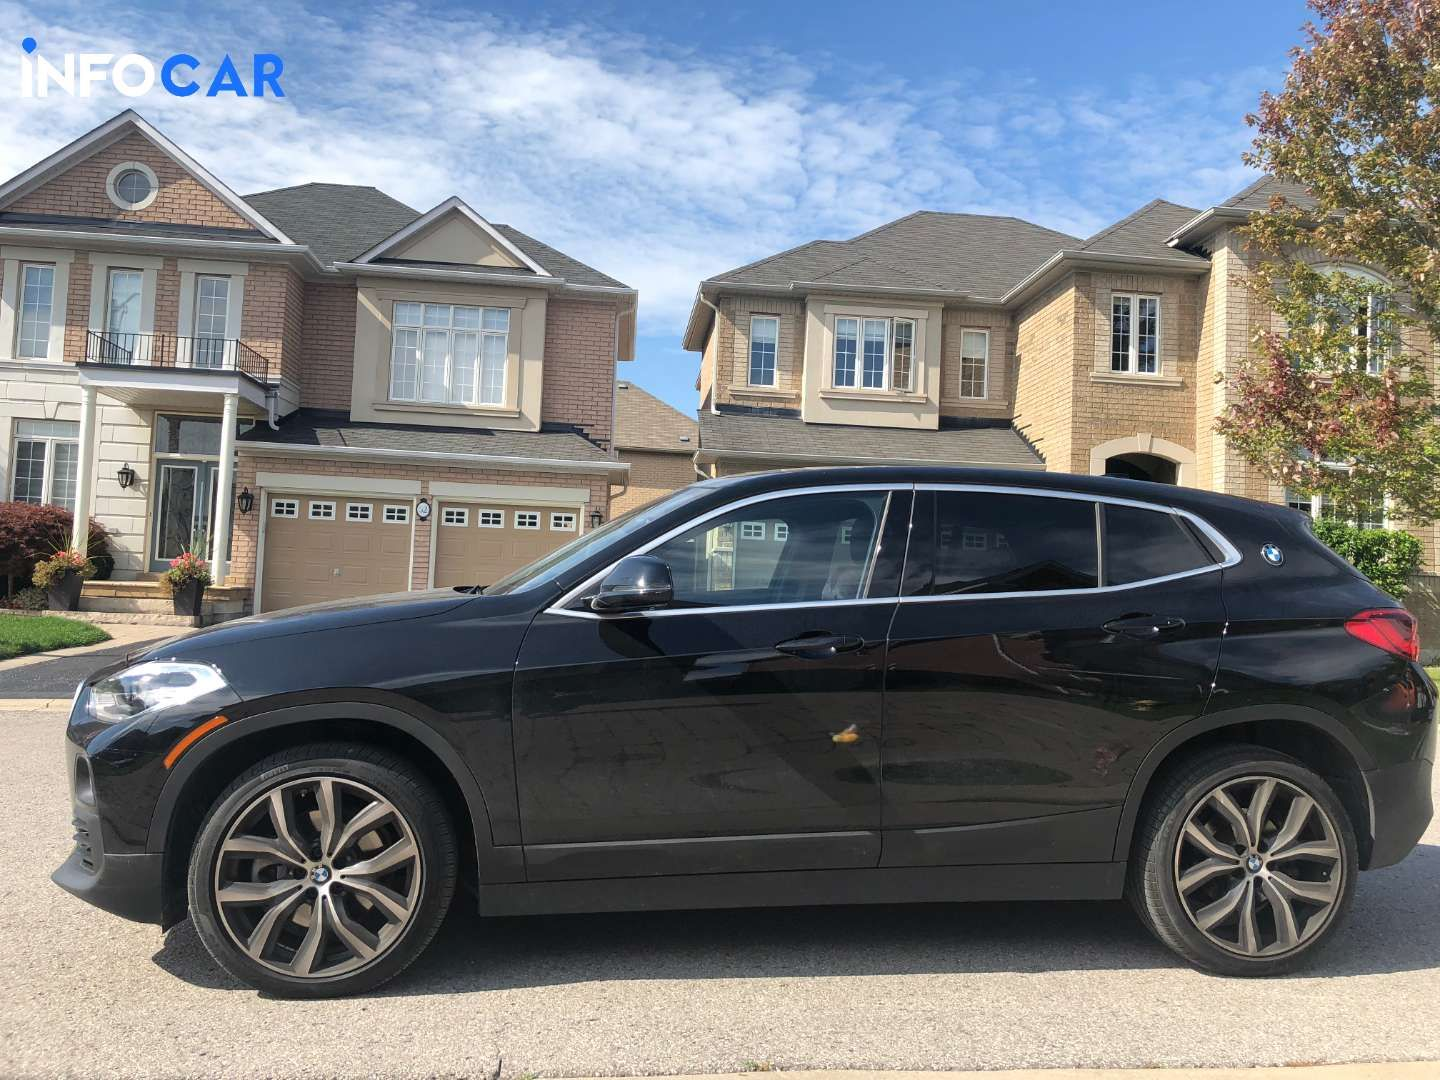 2018 BMW X2 null - INFOCAR - Toronto's Most Comprehensive New and Used Auto Trading Platform